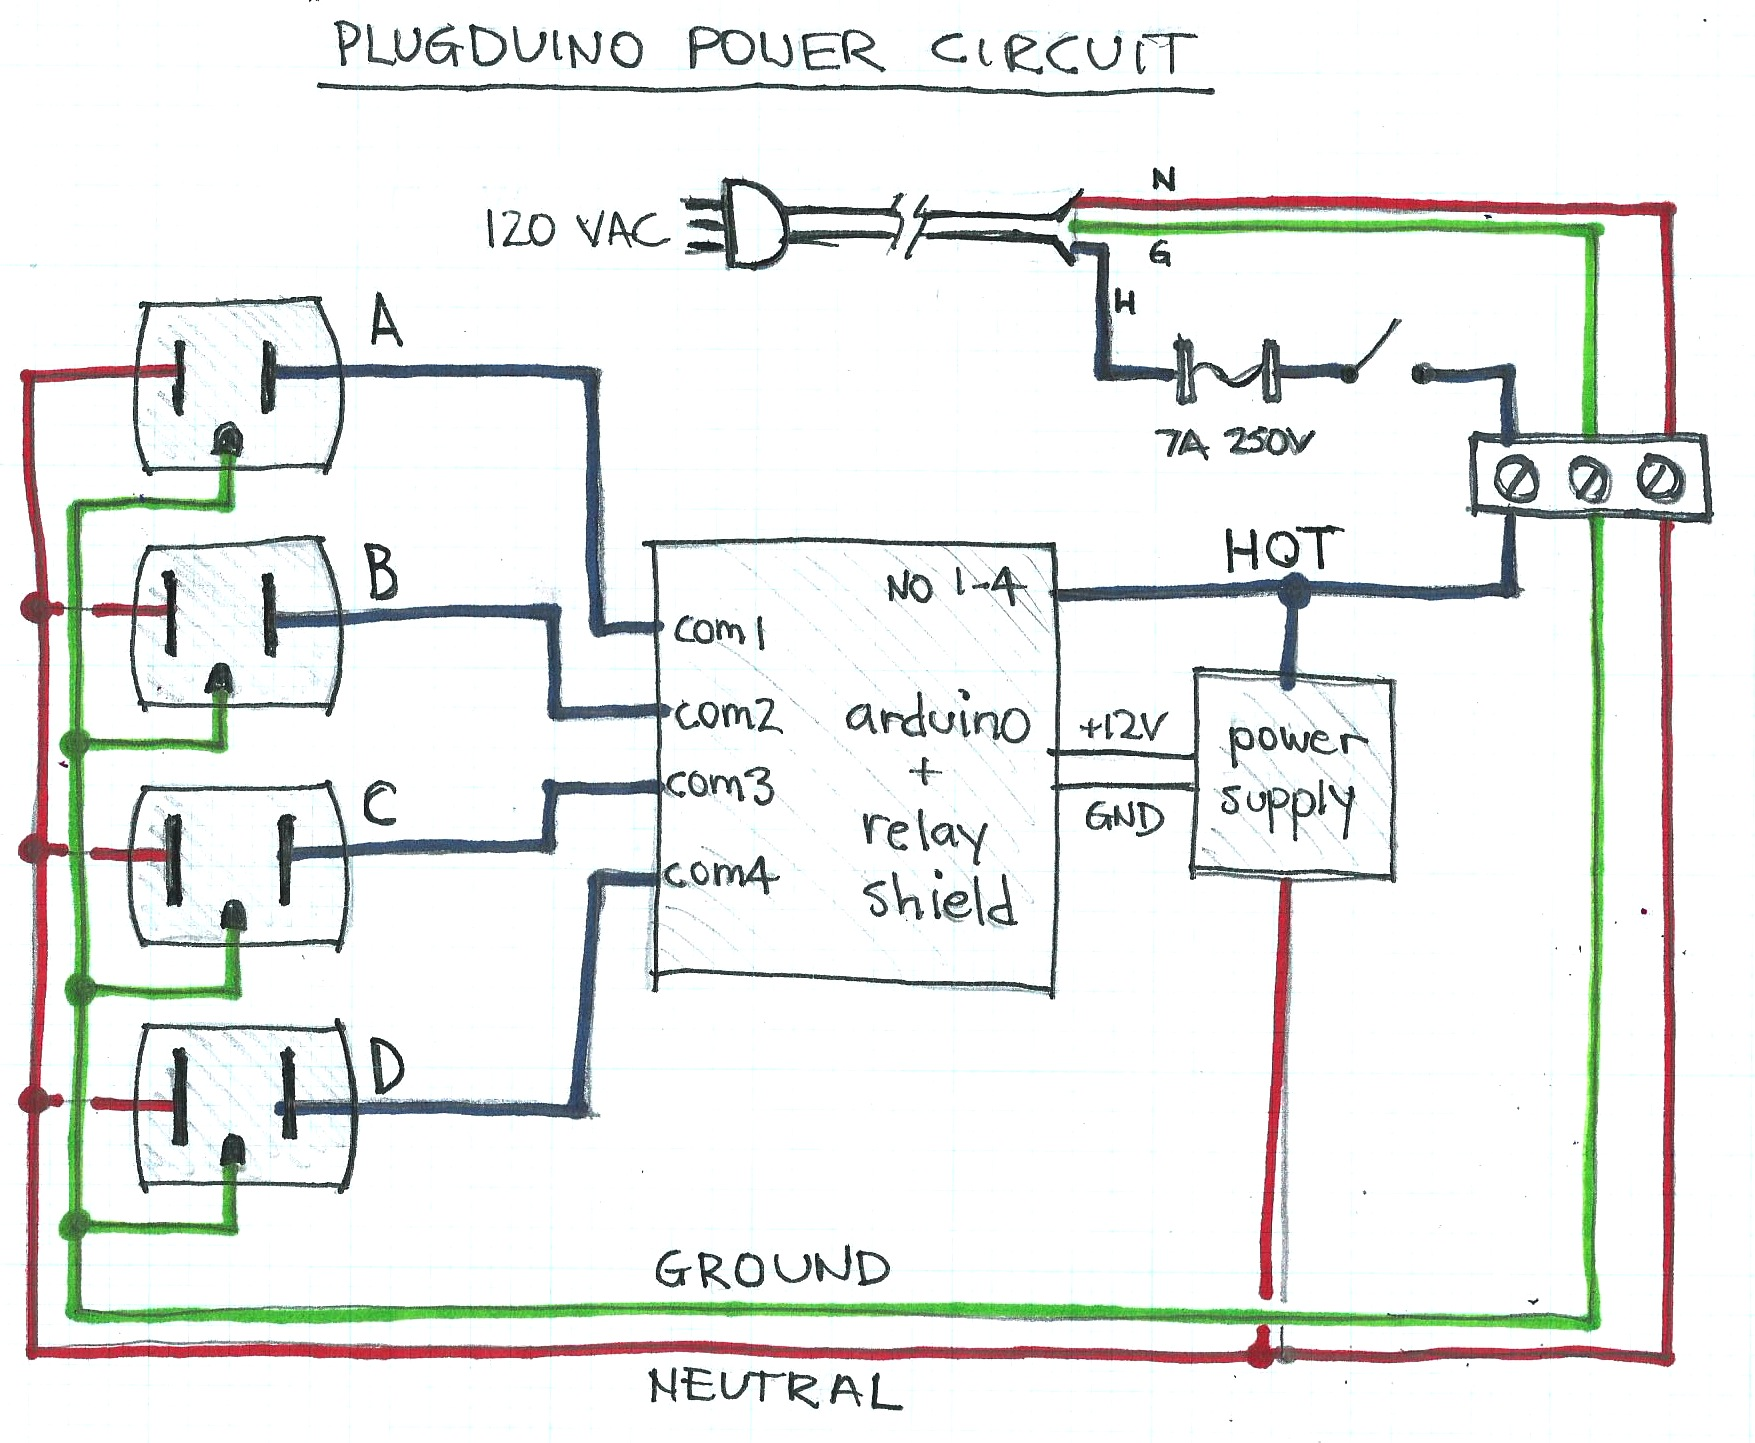 Picture of Power Circuit Schematic